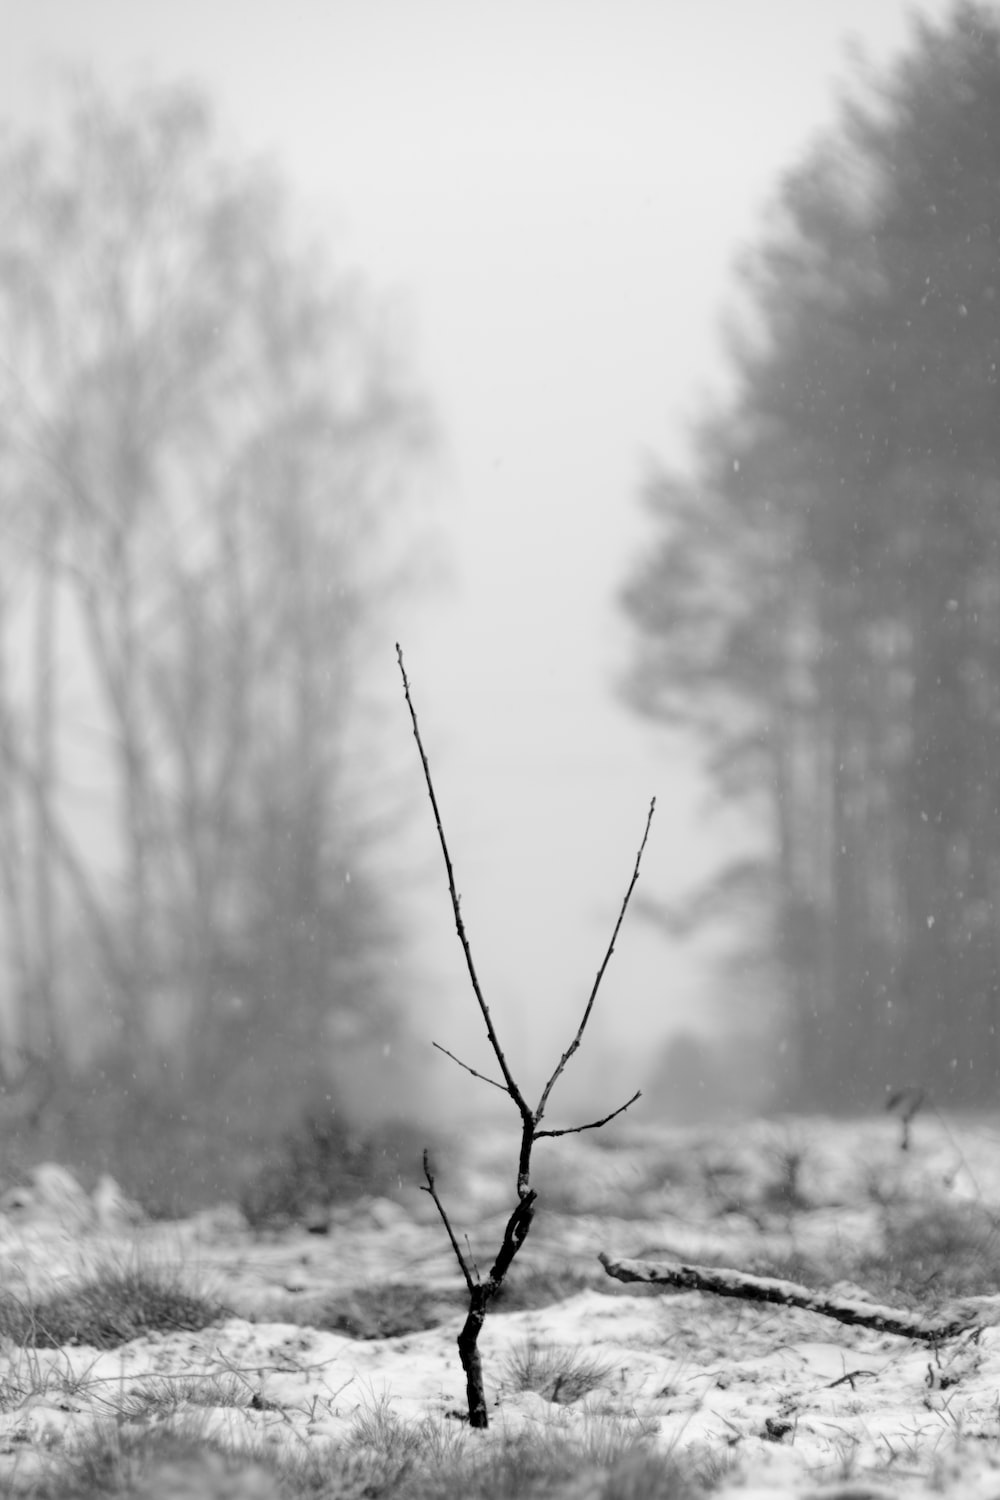 black tree branch on snow-covered field